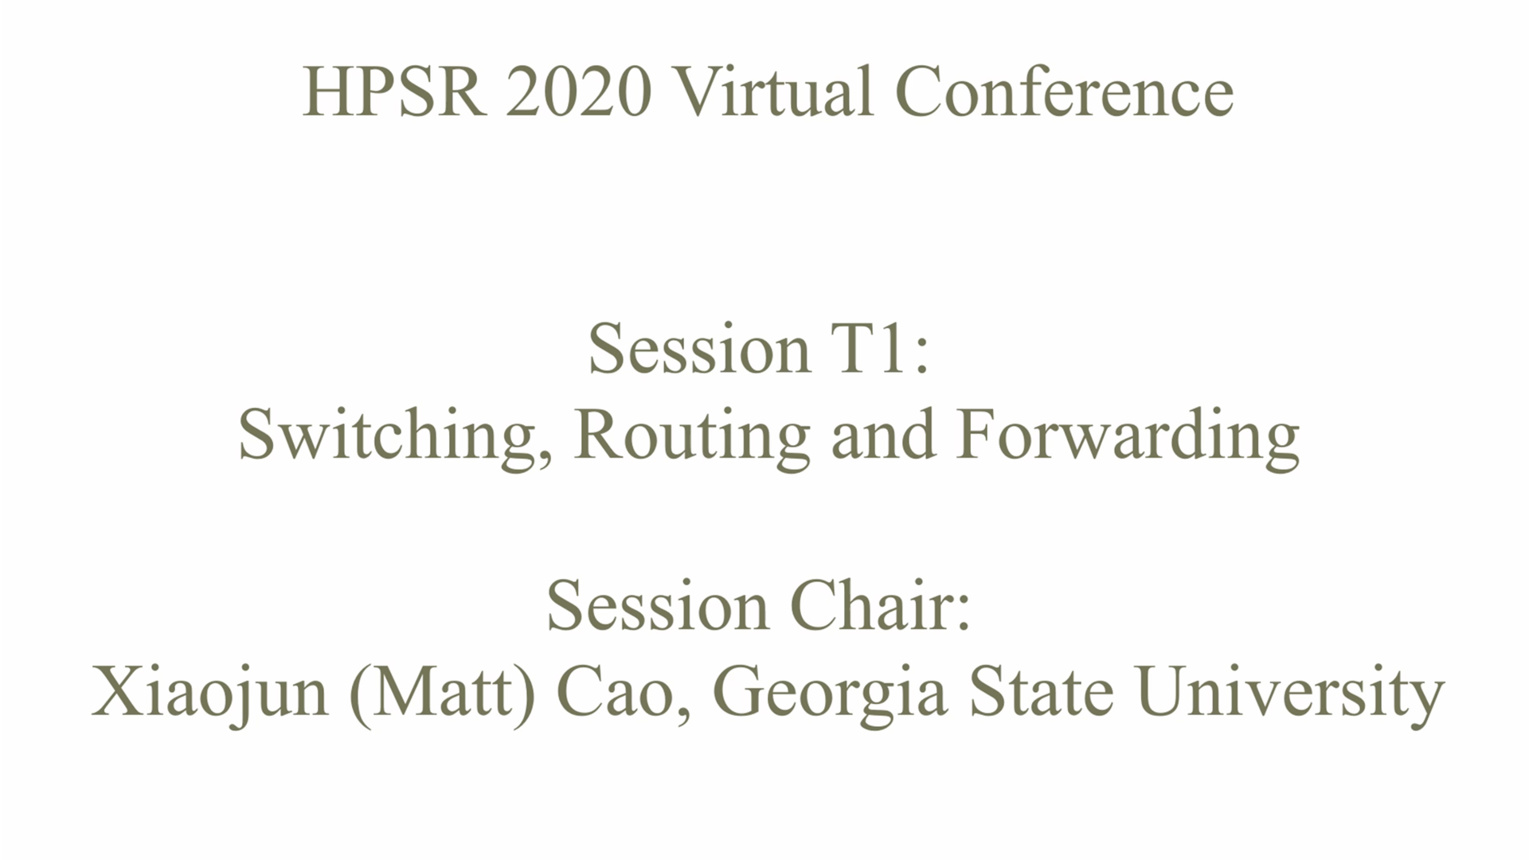 Switching, Routing & Forwarding: Technical Session 1 - HPSR 2020 Virtual Conference